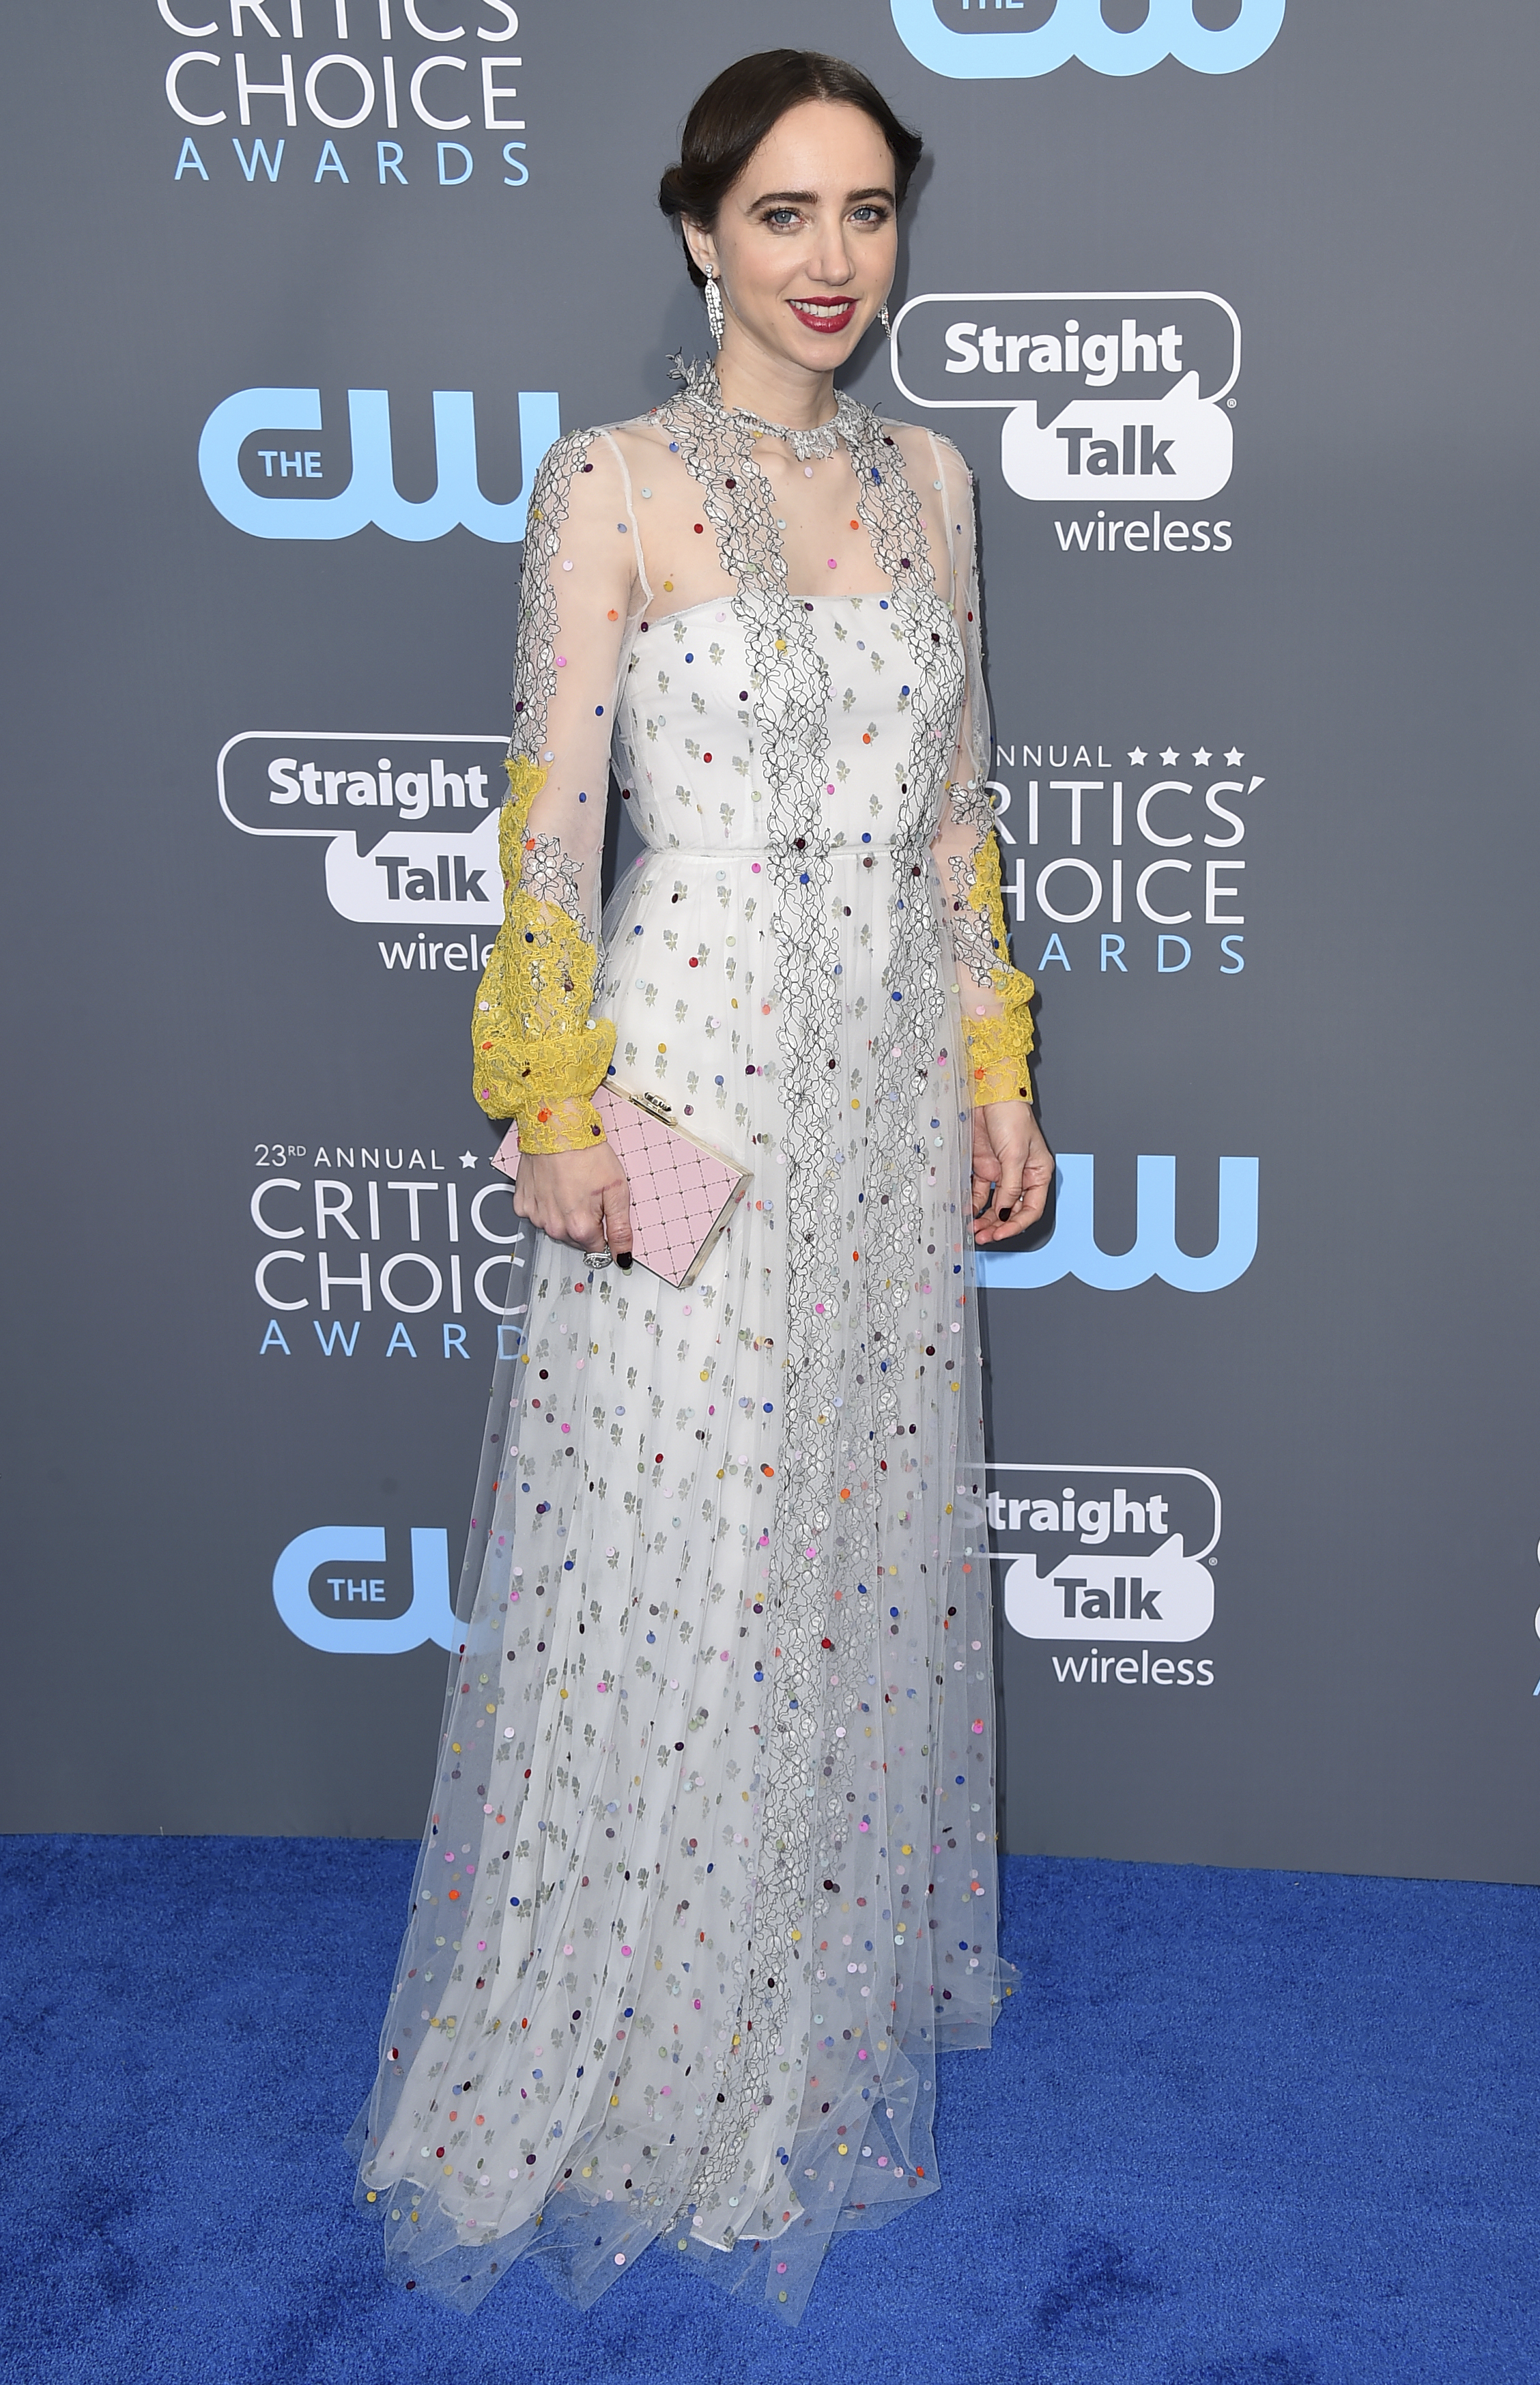 <div class='meta'><div class='origin-logo' data-origin='AP'></div><span class='caption-text' data-credit='Jordan Strauss/Invision/AP'>Zoe Kazan arrives at the 23rd annual Critics' Choice Awards at the Barker Hangar on Thursday, Jan. 11, 2018, in Santa Monica, Calif. (Photo by Jordan Strauss/Invision/AP)</span></div>